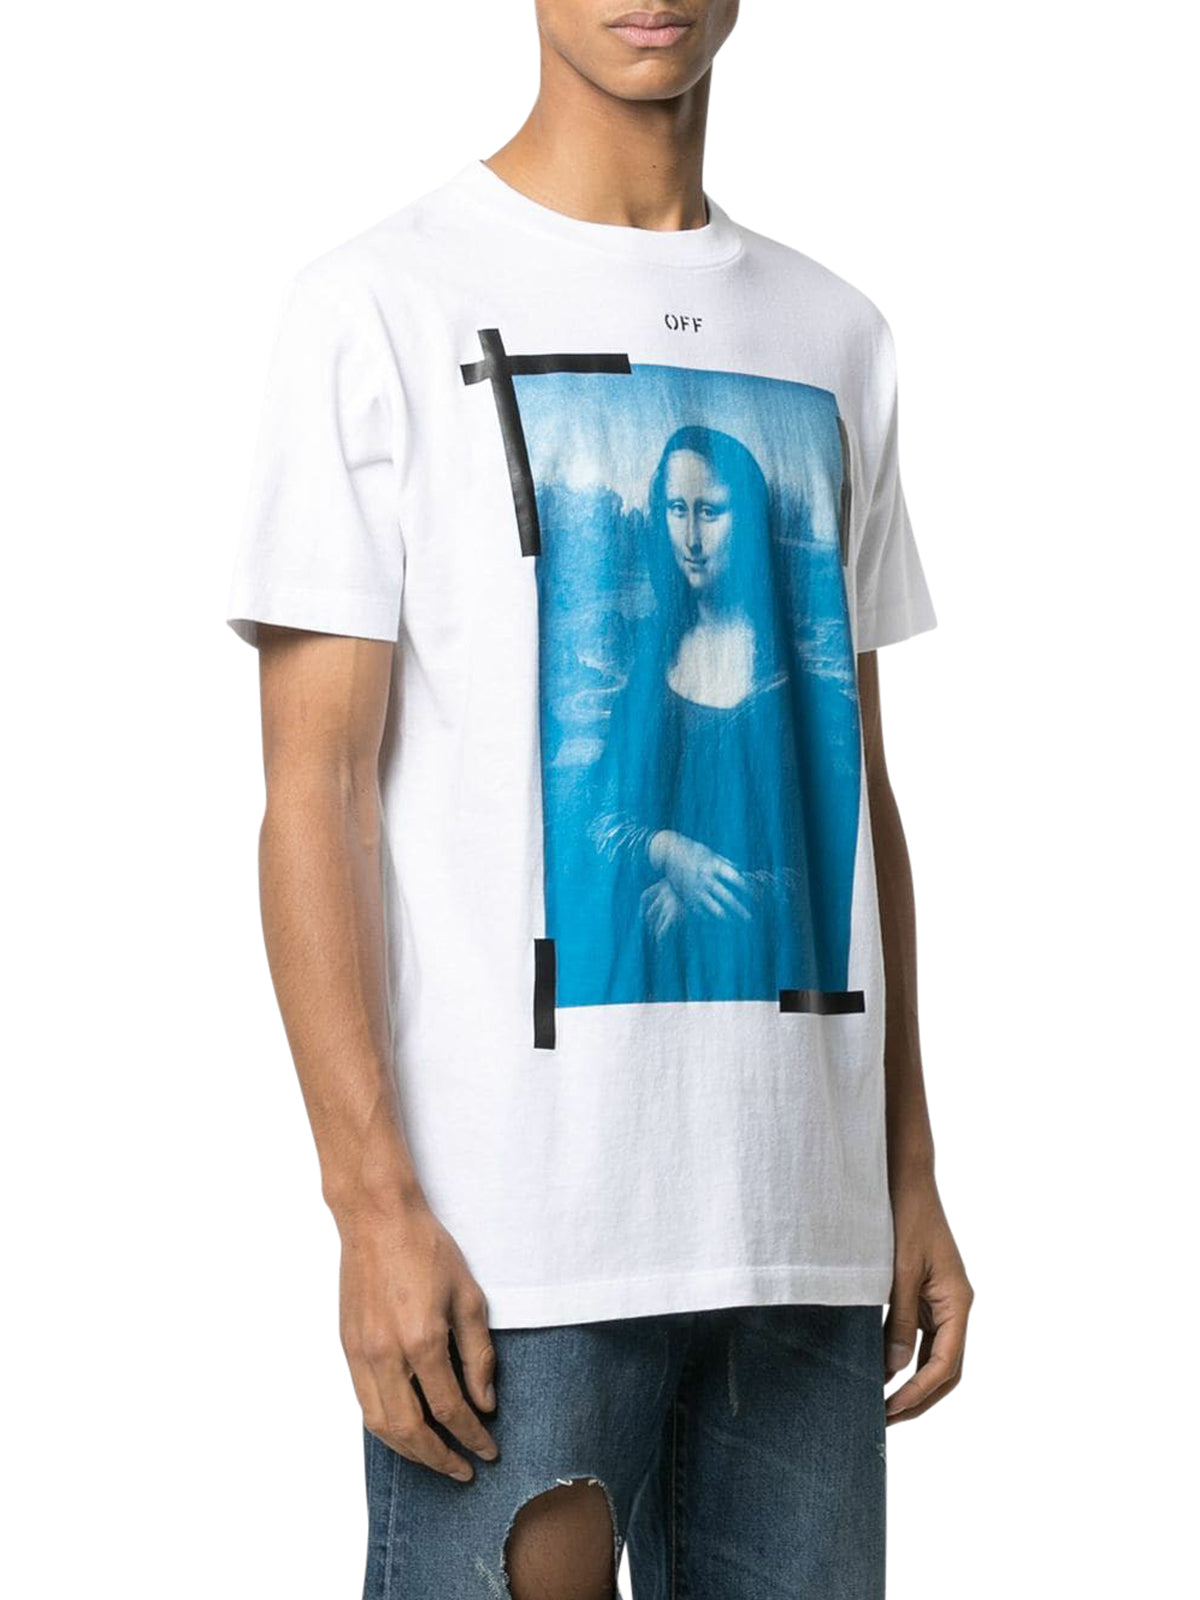 Mona Lisa graphic print T-shirt